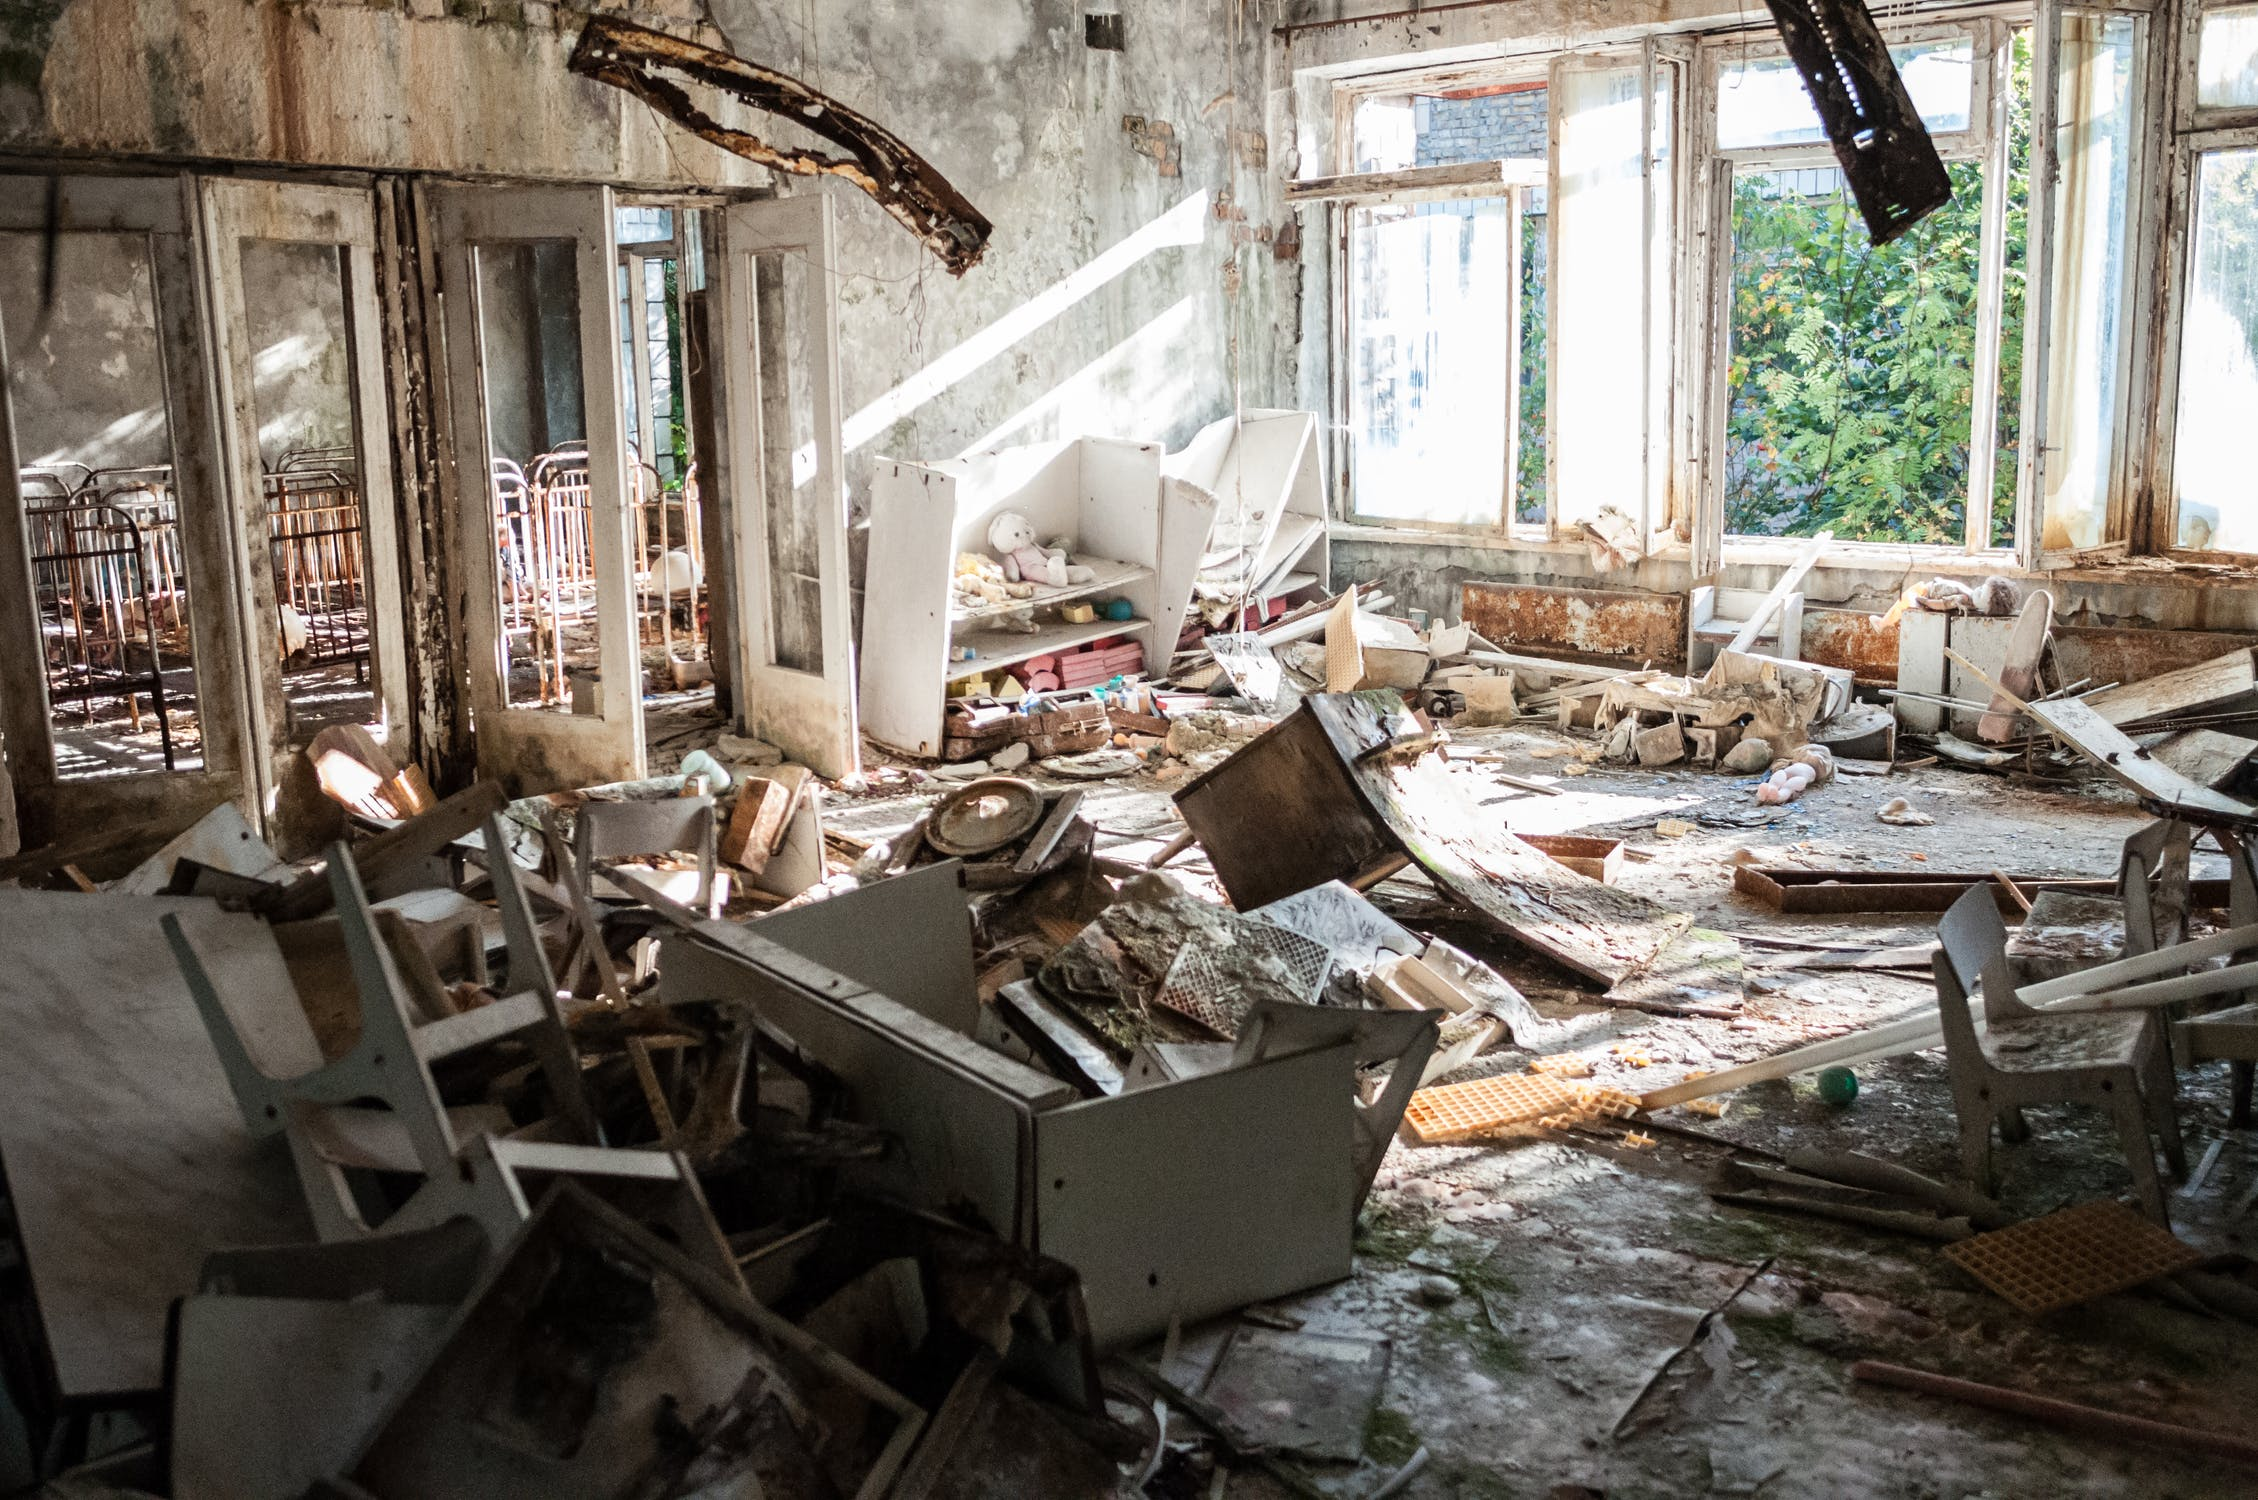 Destroyed room of an abandoned house